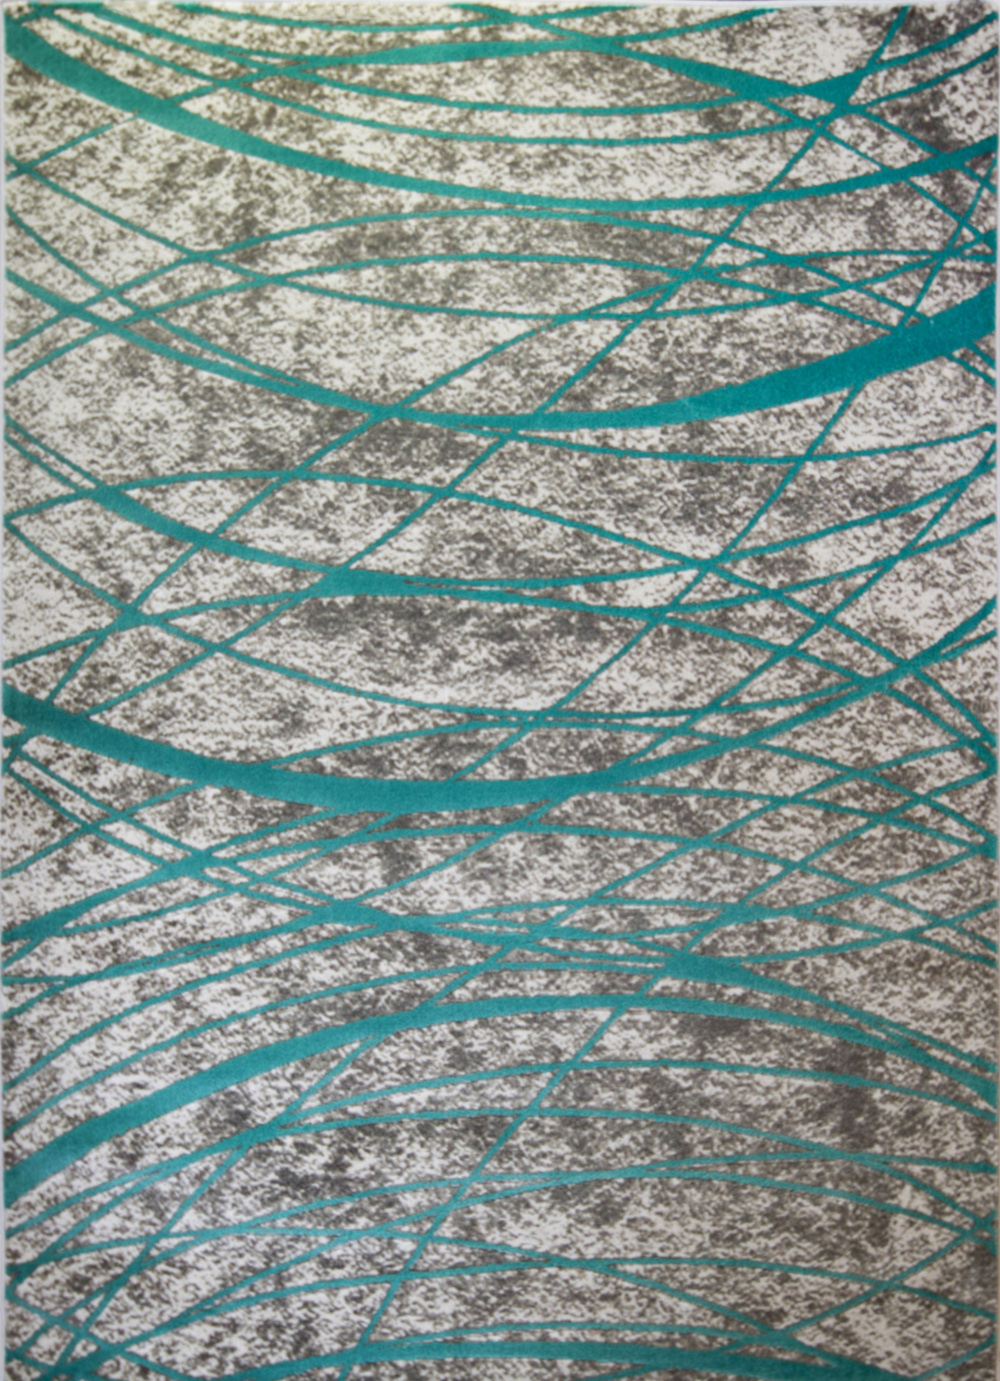 teal area rug home dynamix area rugs: tanja rug: 4718-120 ivory teal - tanja rugs by GERJNQA